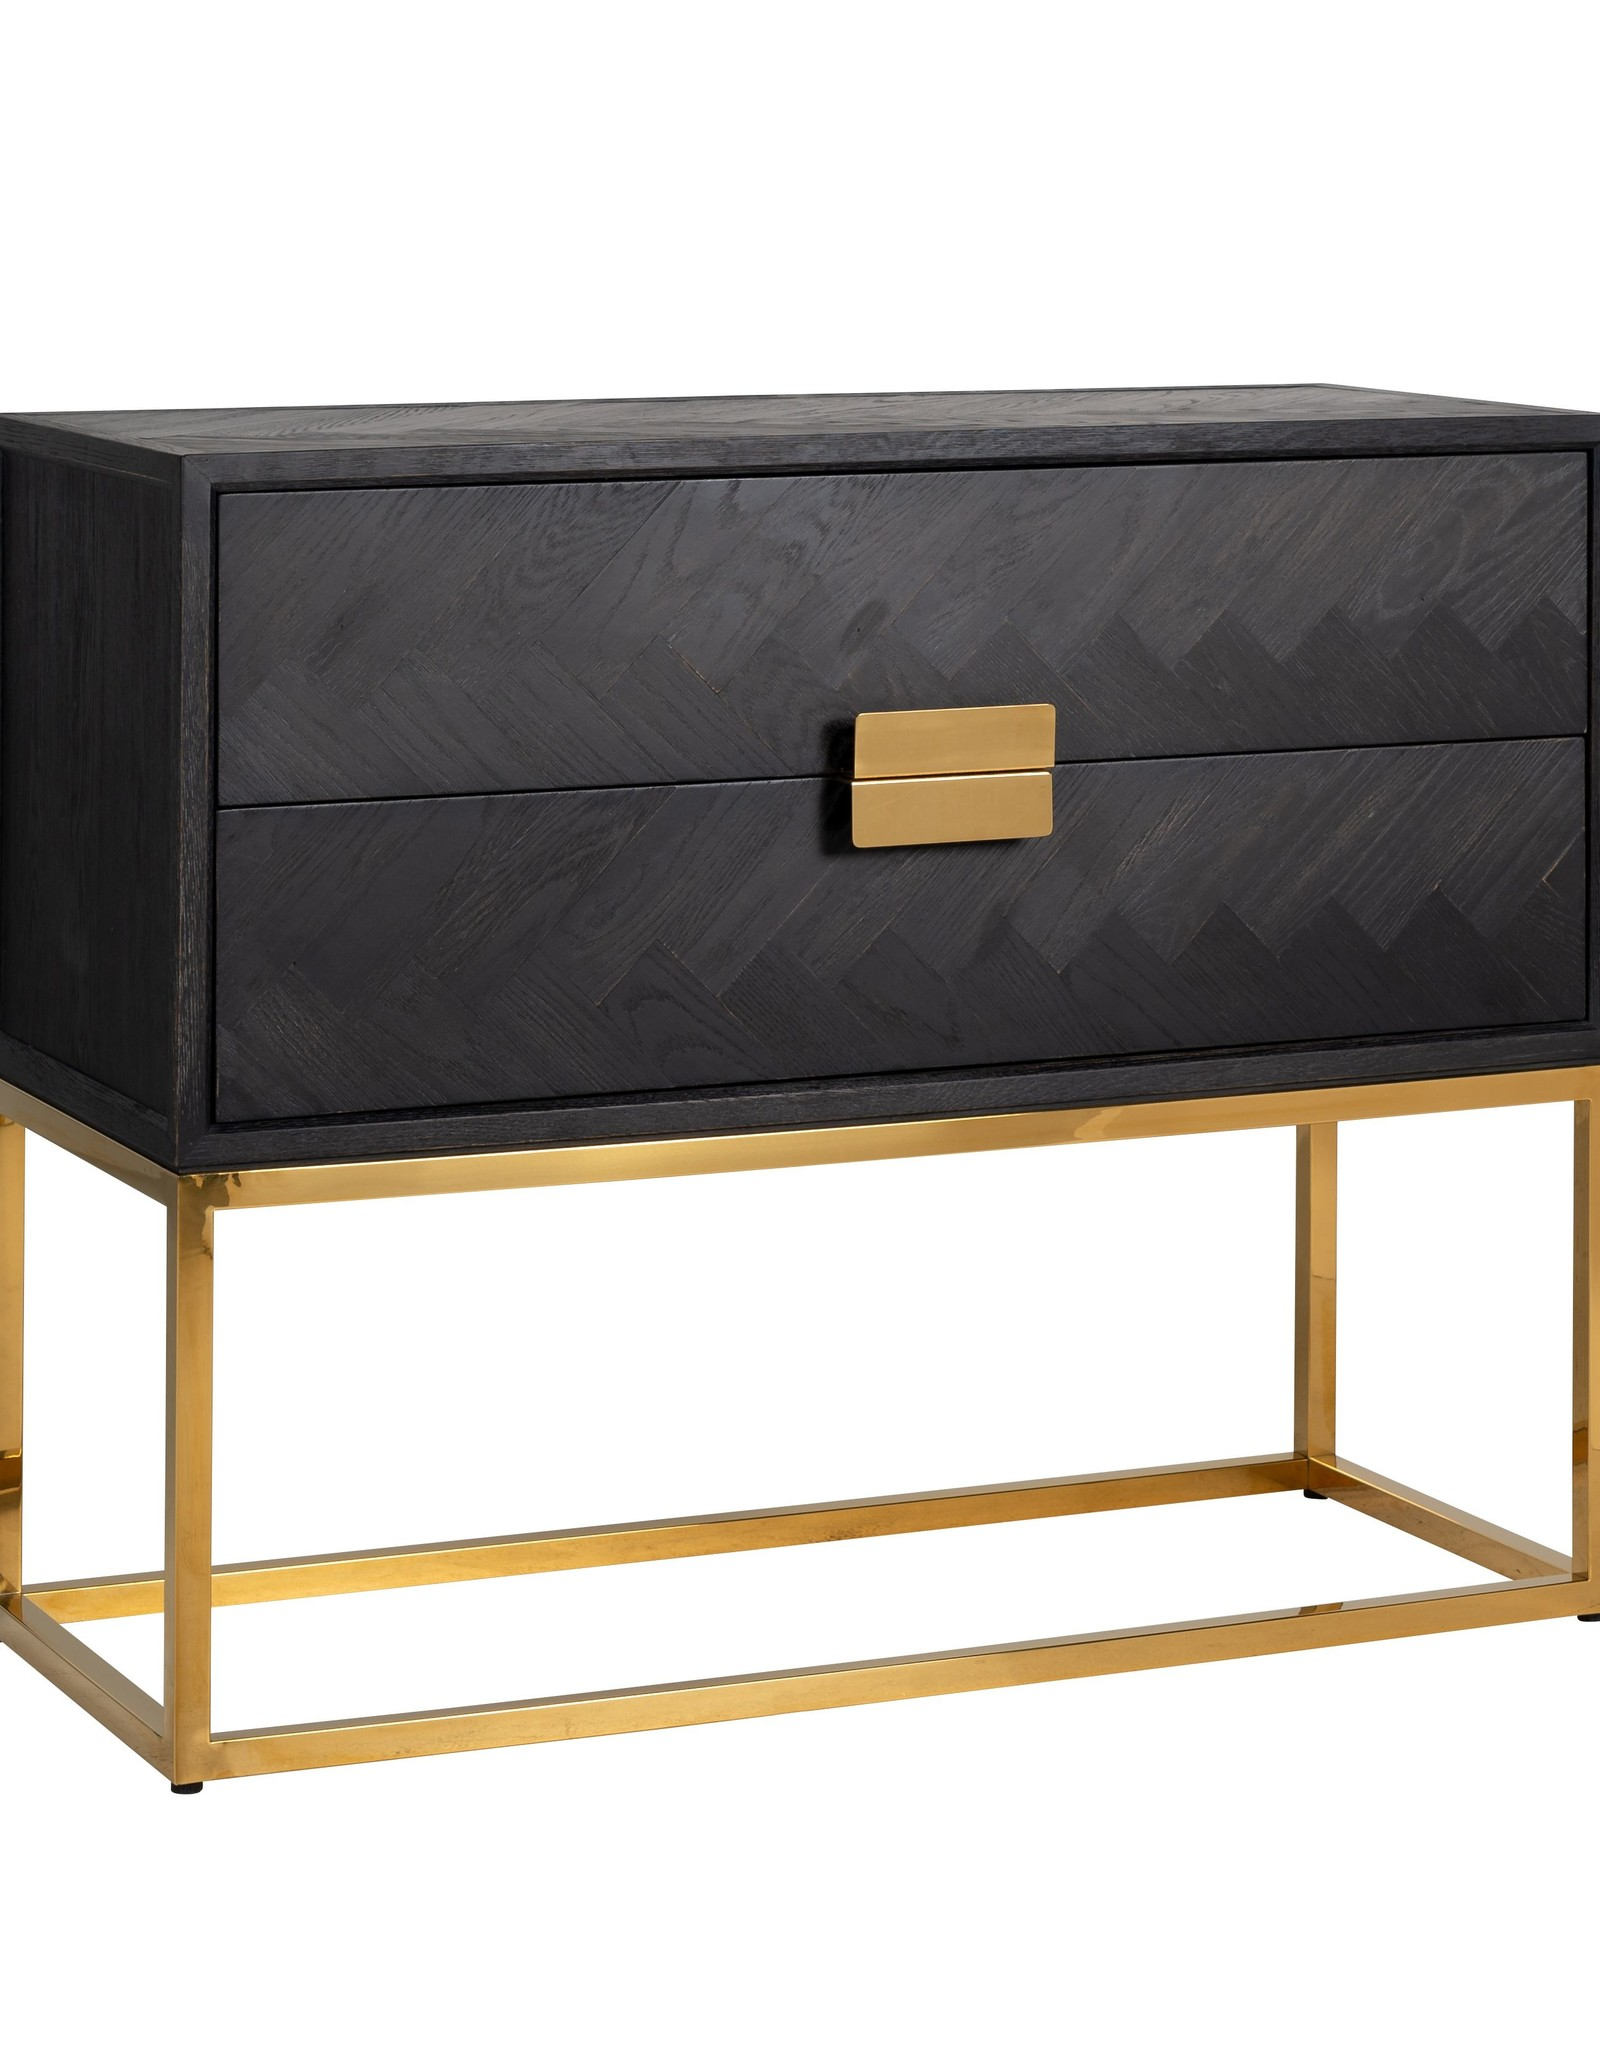 Richmond Interiors Ladenkast Blackbone gold 2-laden